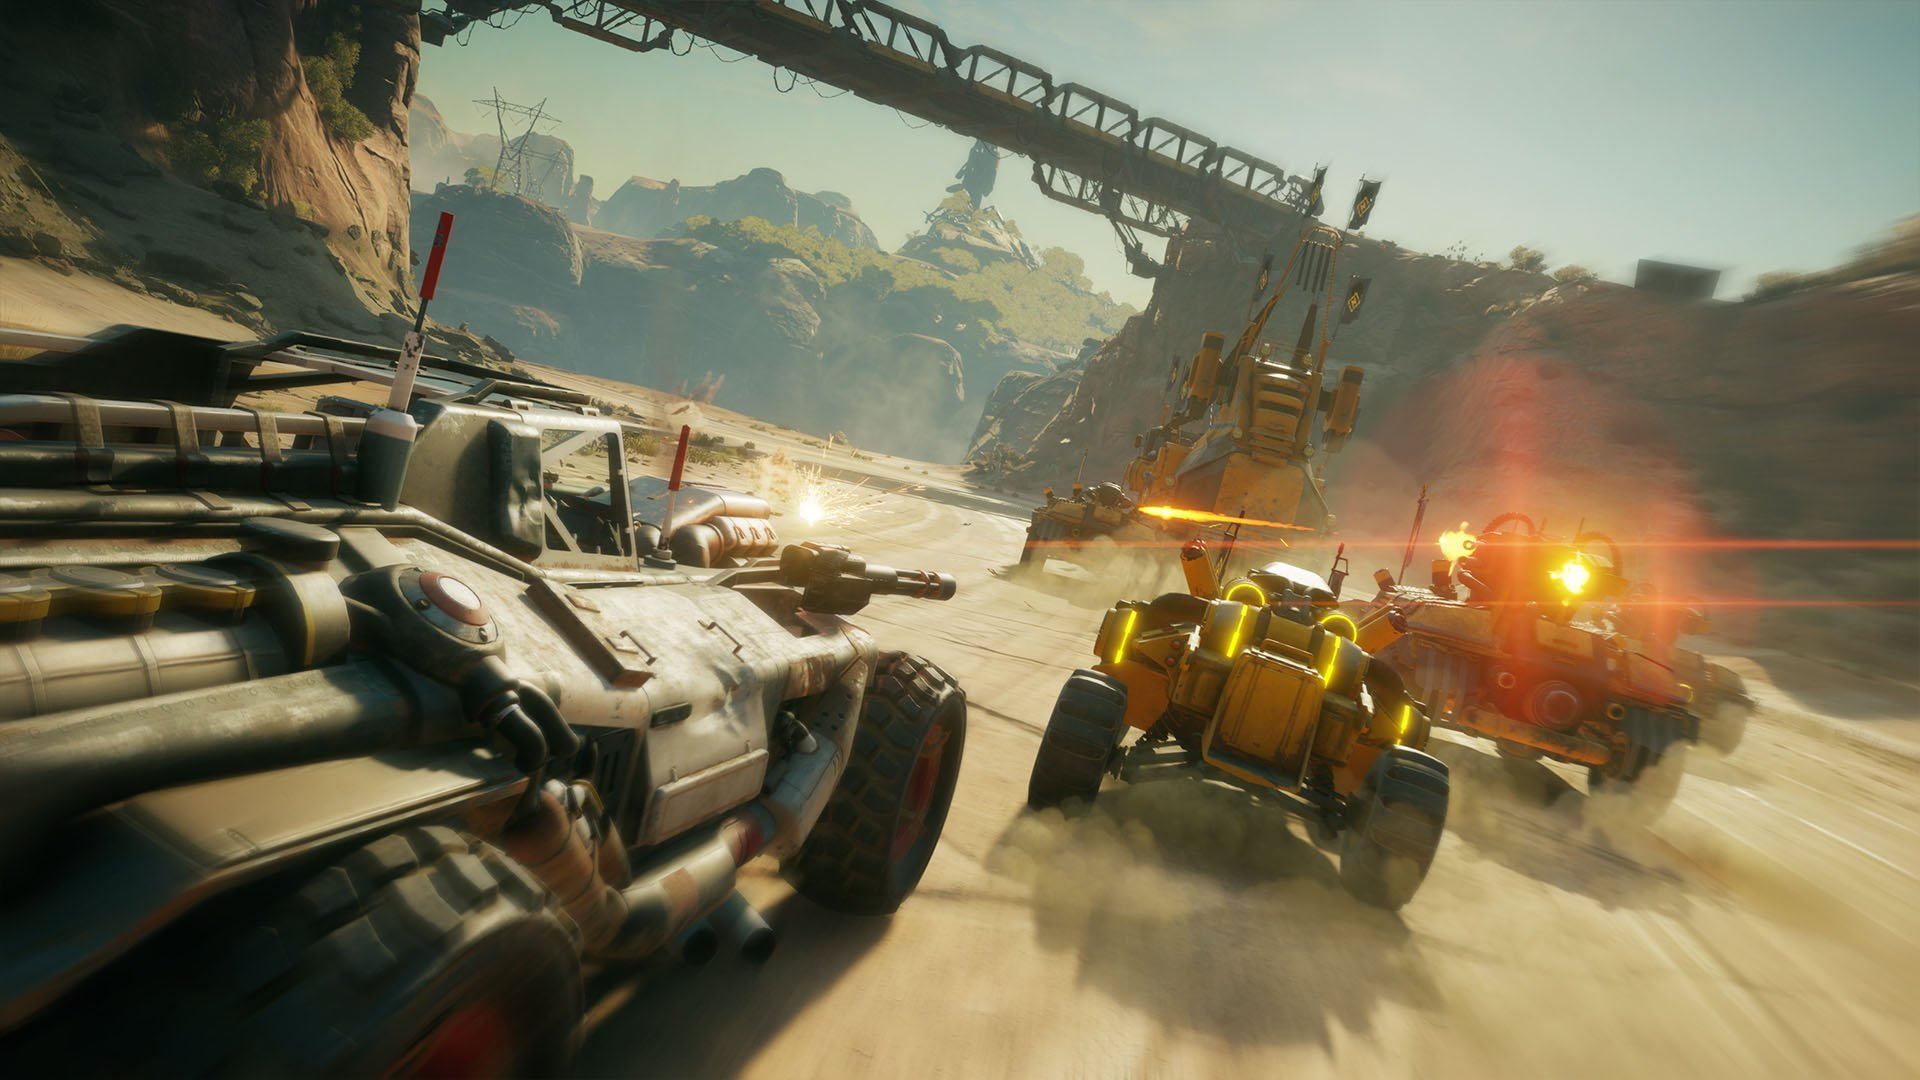 Does Rage 2 have multiplayer or co-op?